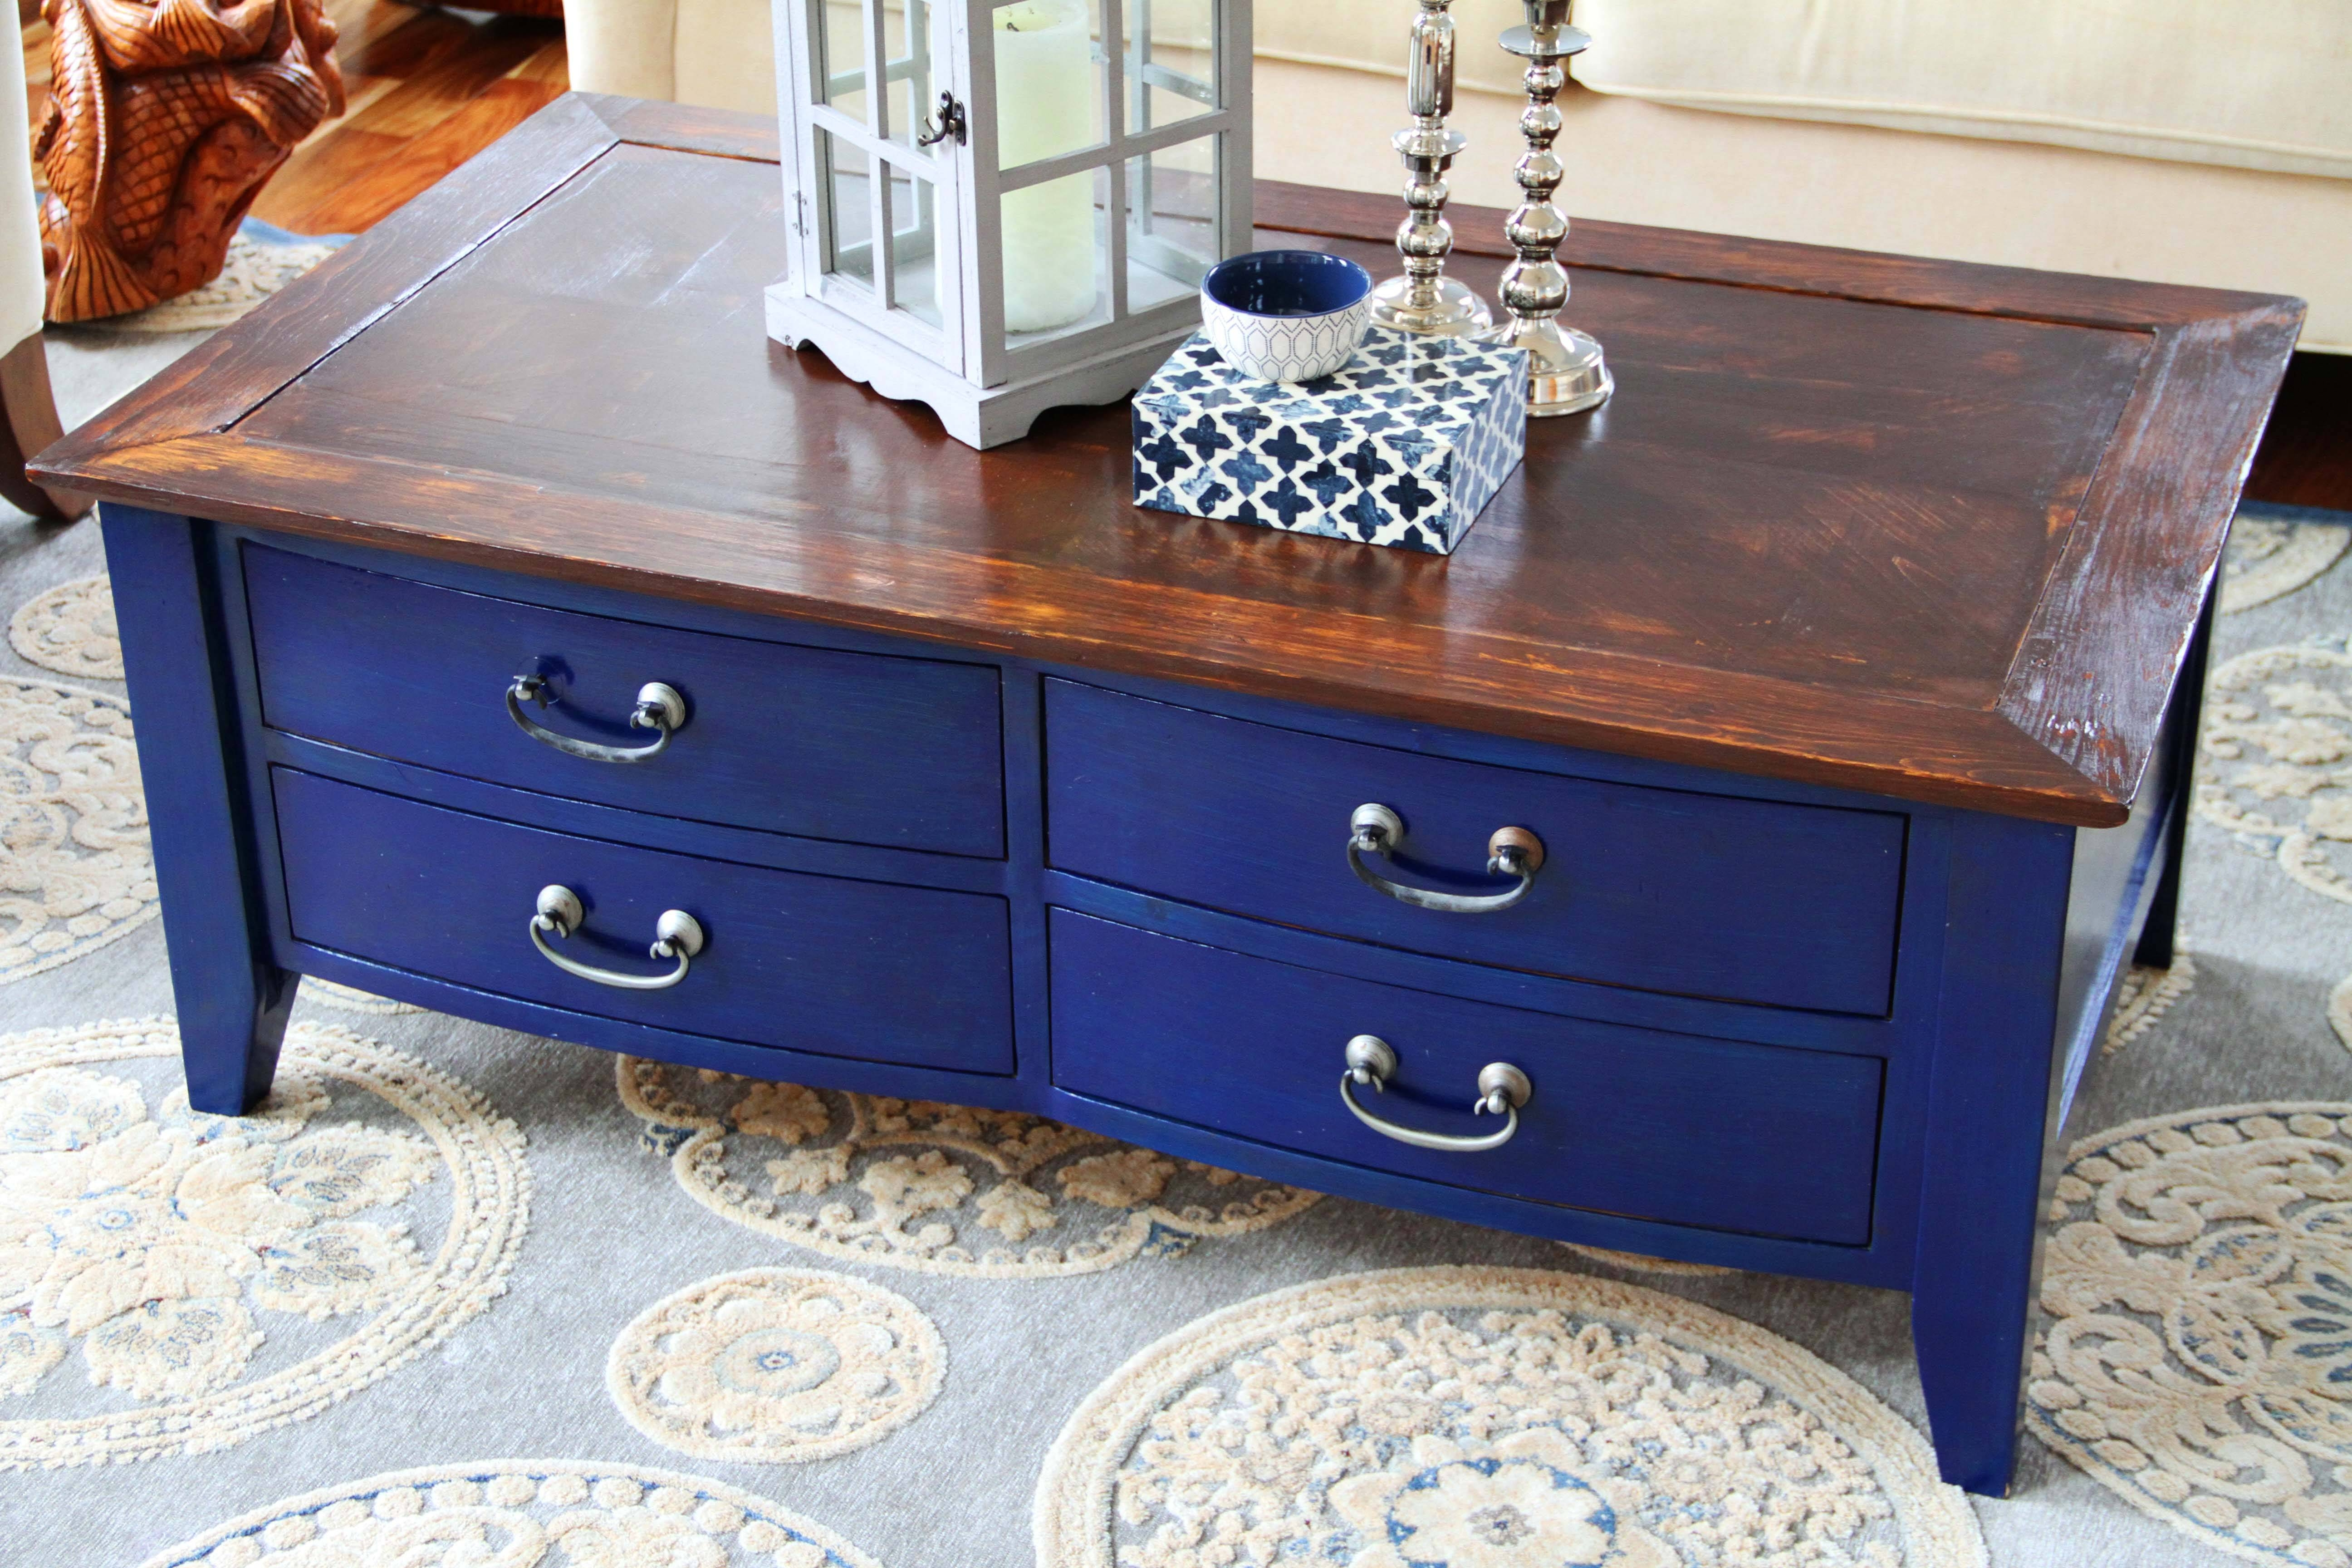 Diy Navy Coffee Table Refinishing | Put That On Your Blog intended for Blue Coffee Tables (Image 21 of 30)